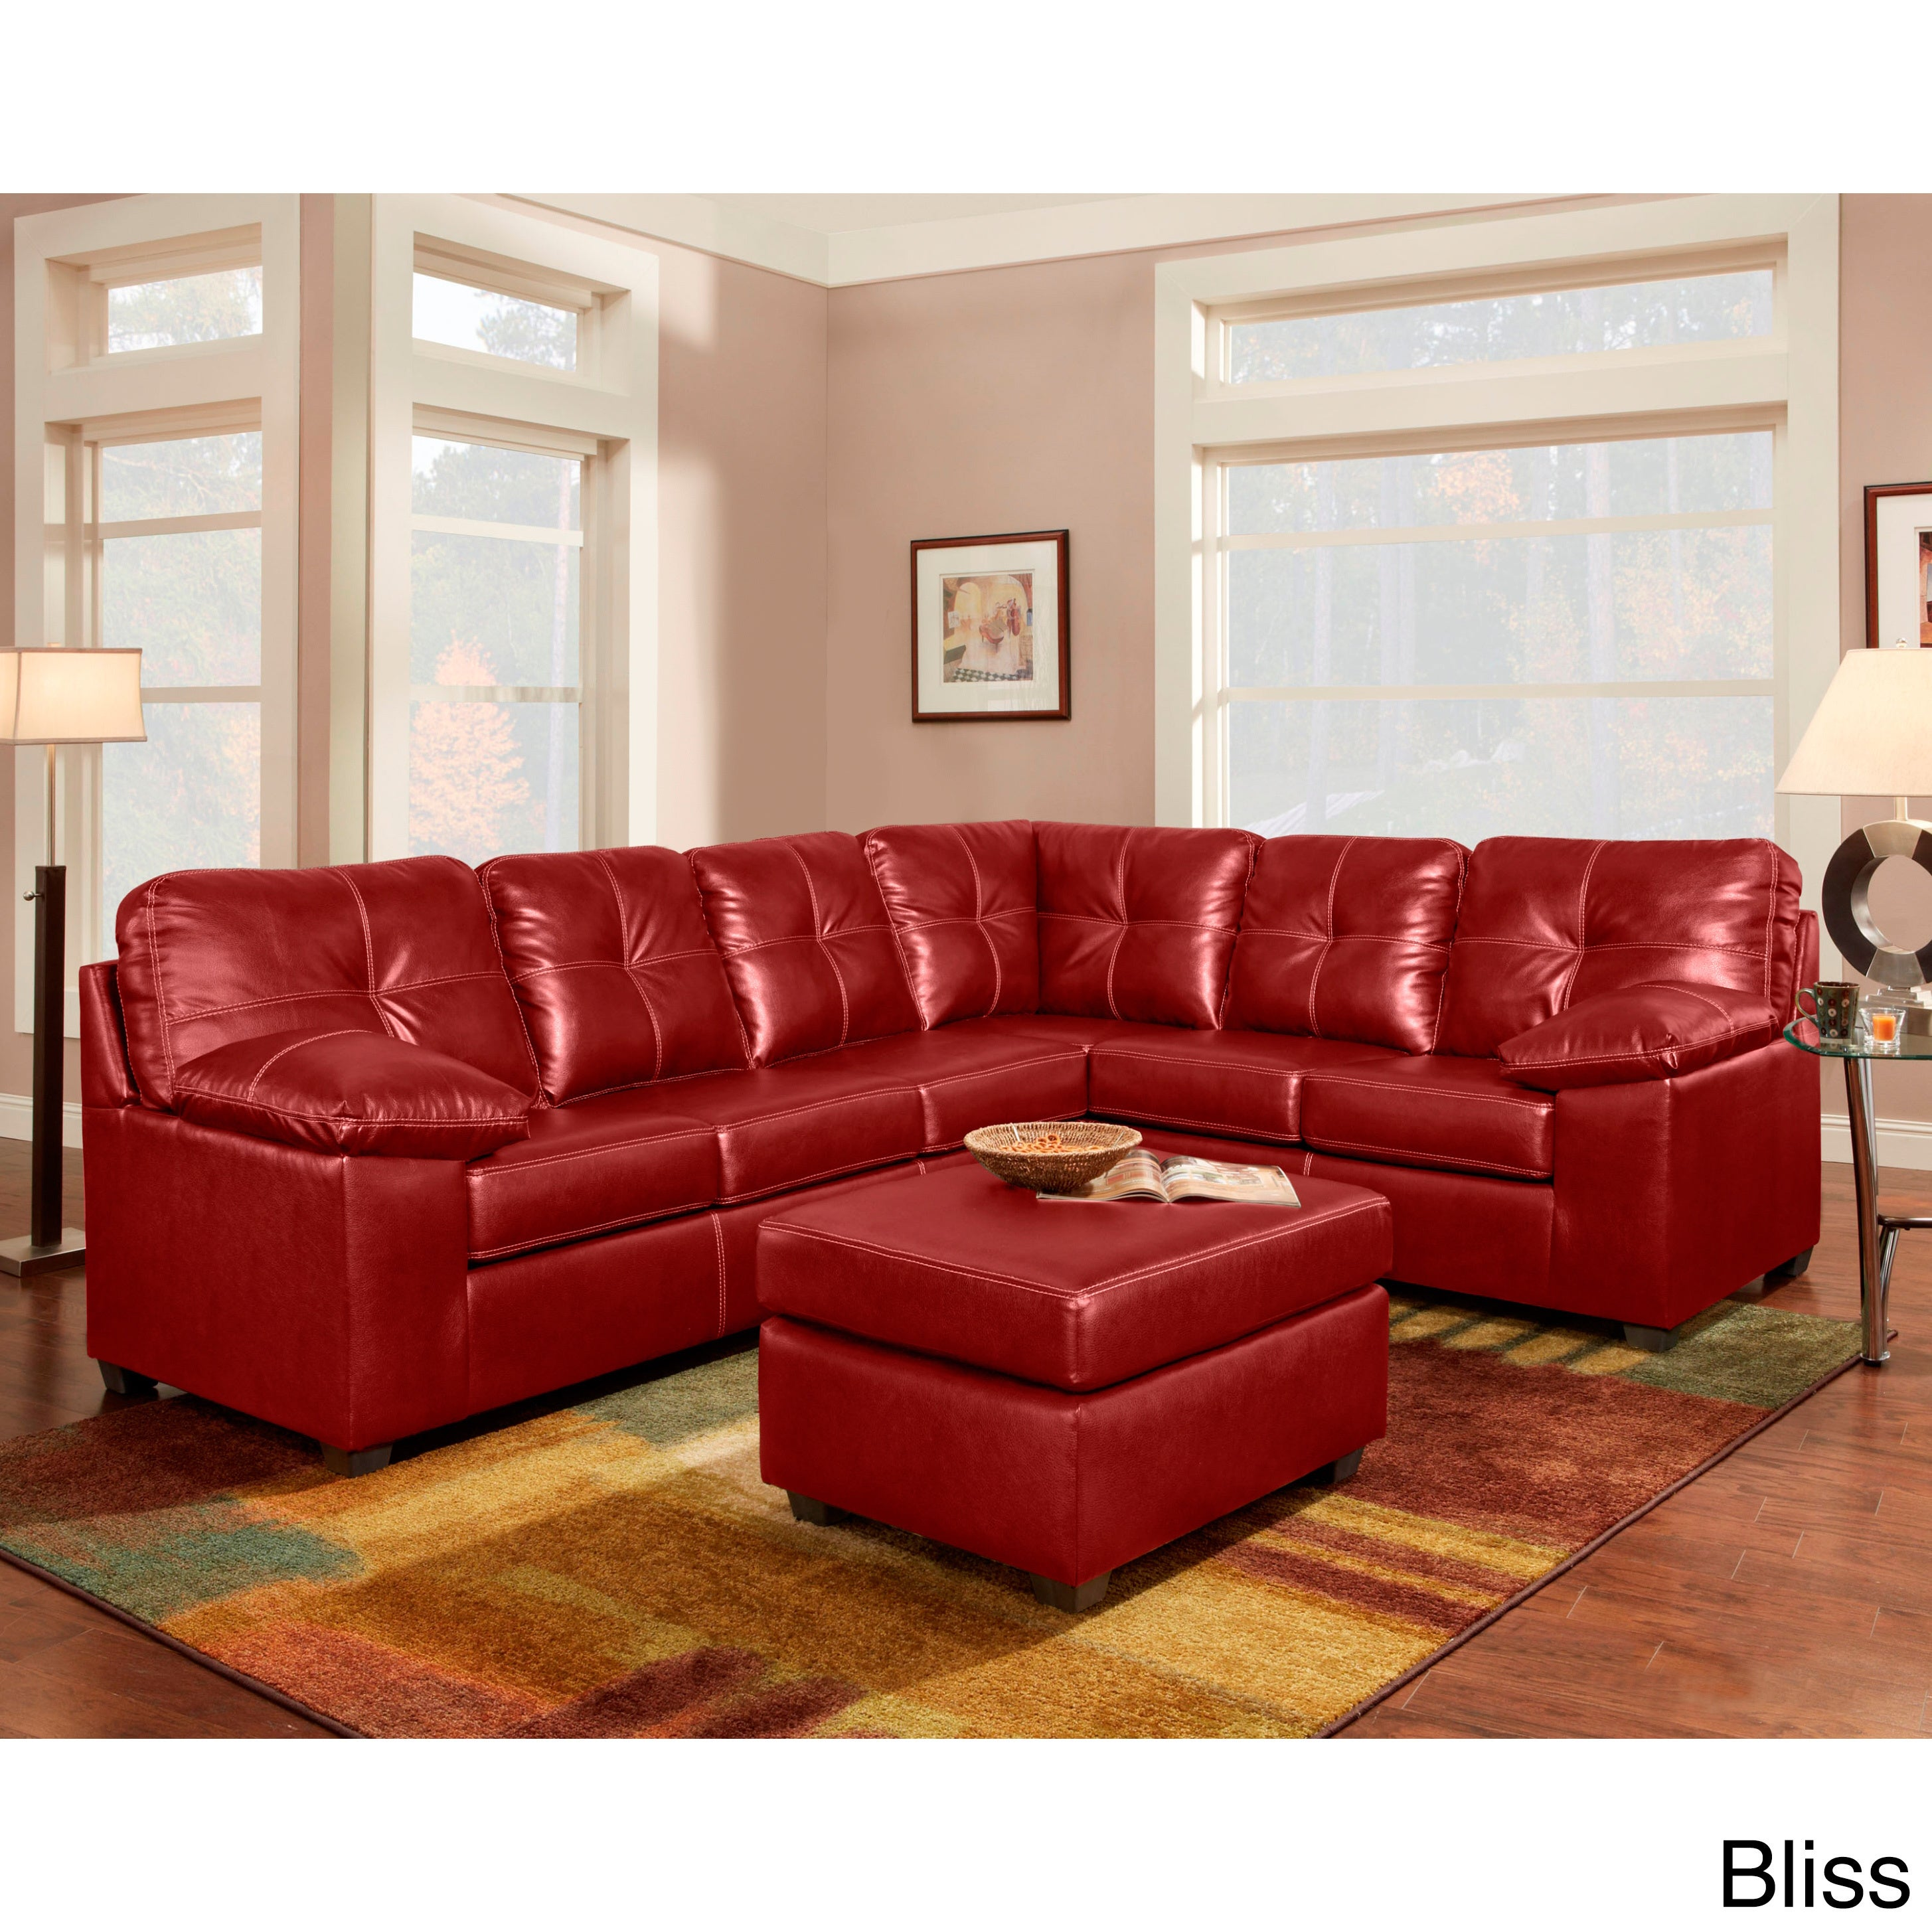 Sofa Trendz Red/Brown Bonded Leather Sectional (Red)